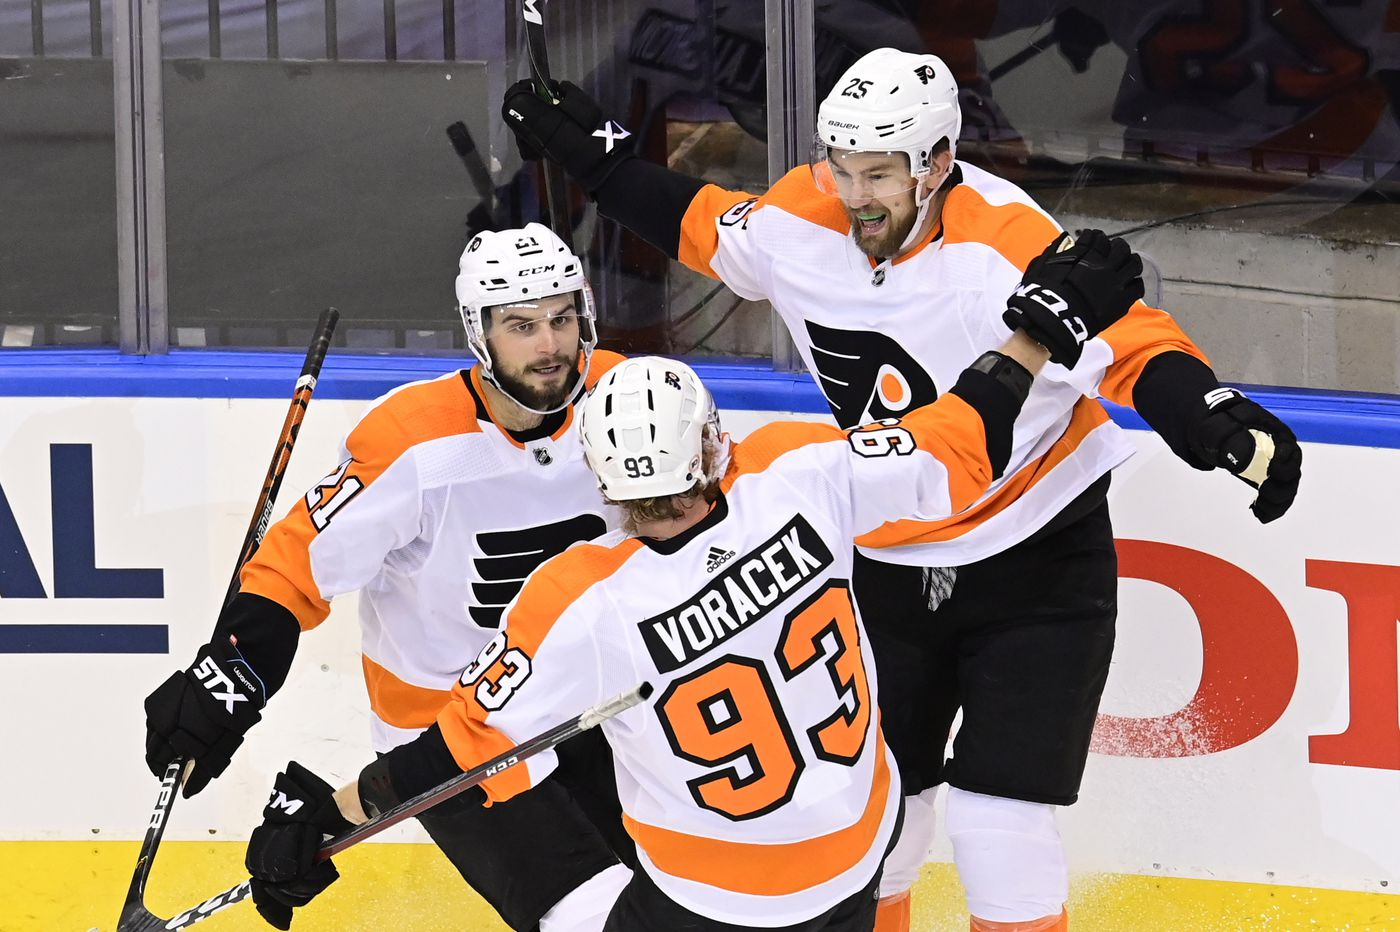 Answering Flyers fans' questions about trades, signings, the 2021 expansion draft, and more | Sam Carchidi